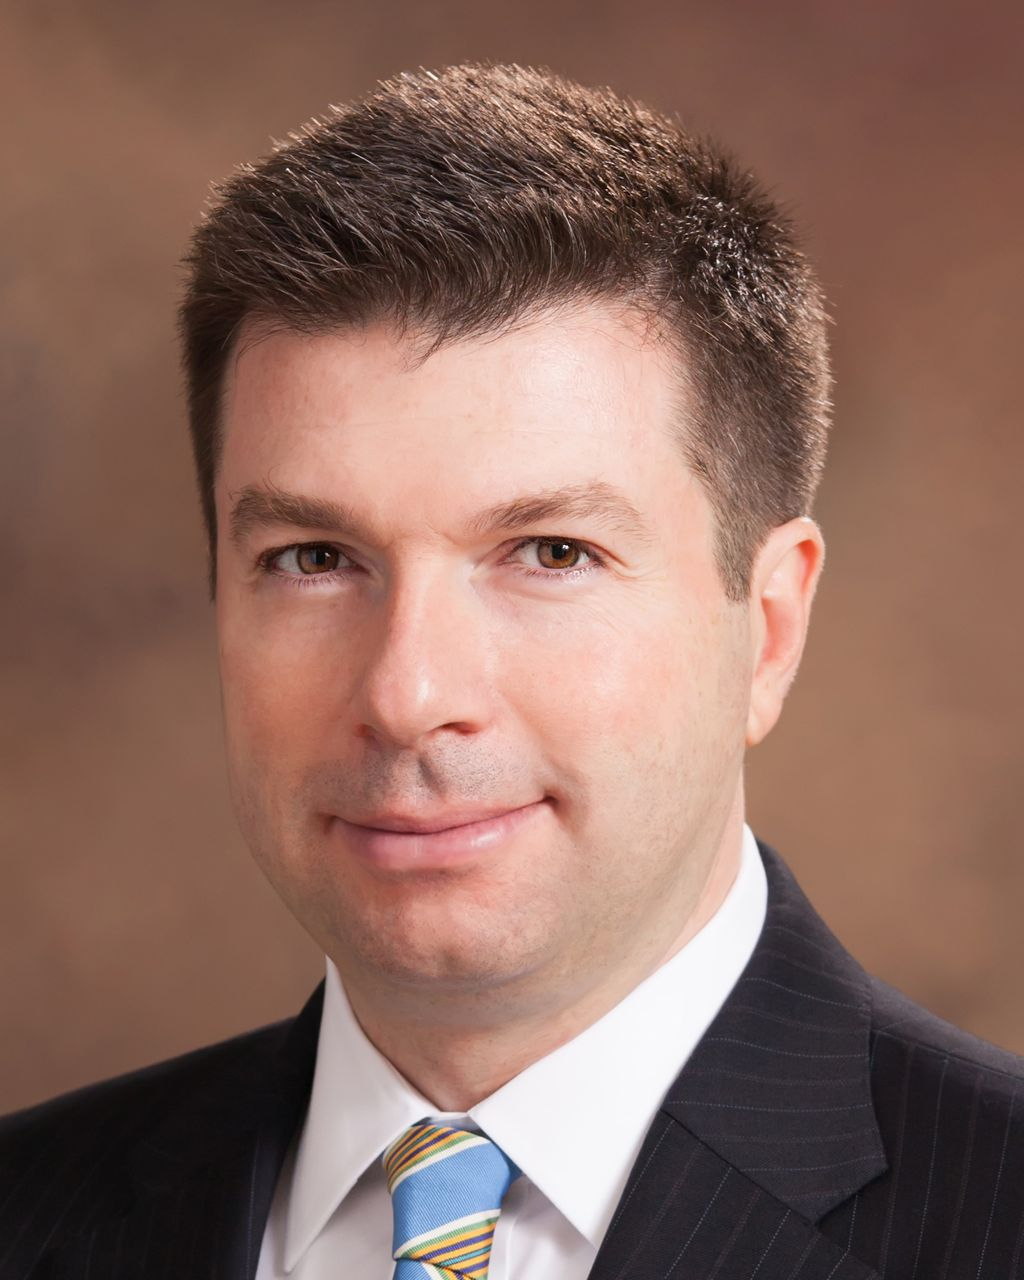 Patrick Cote, financial advisor Lincoln MA